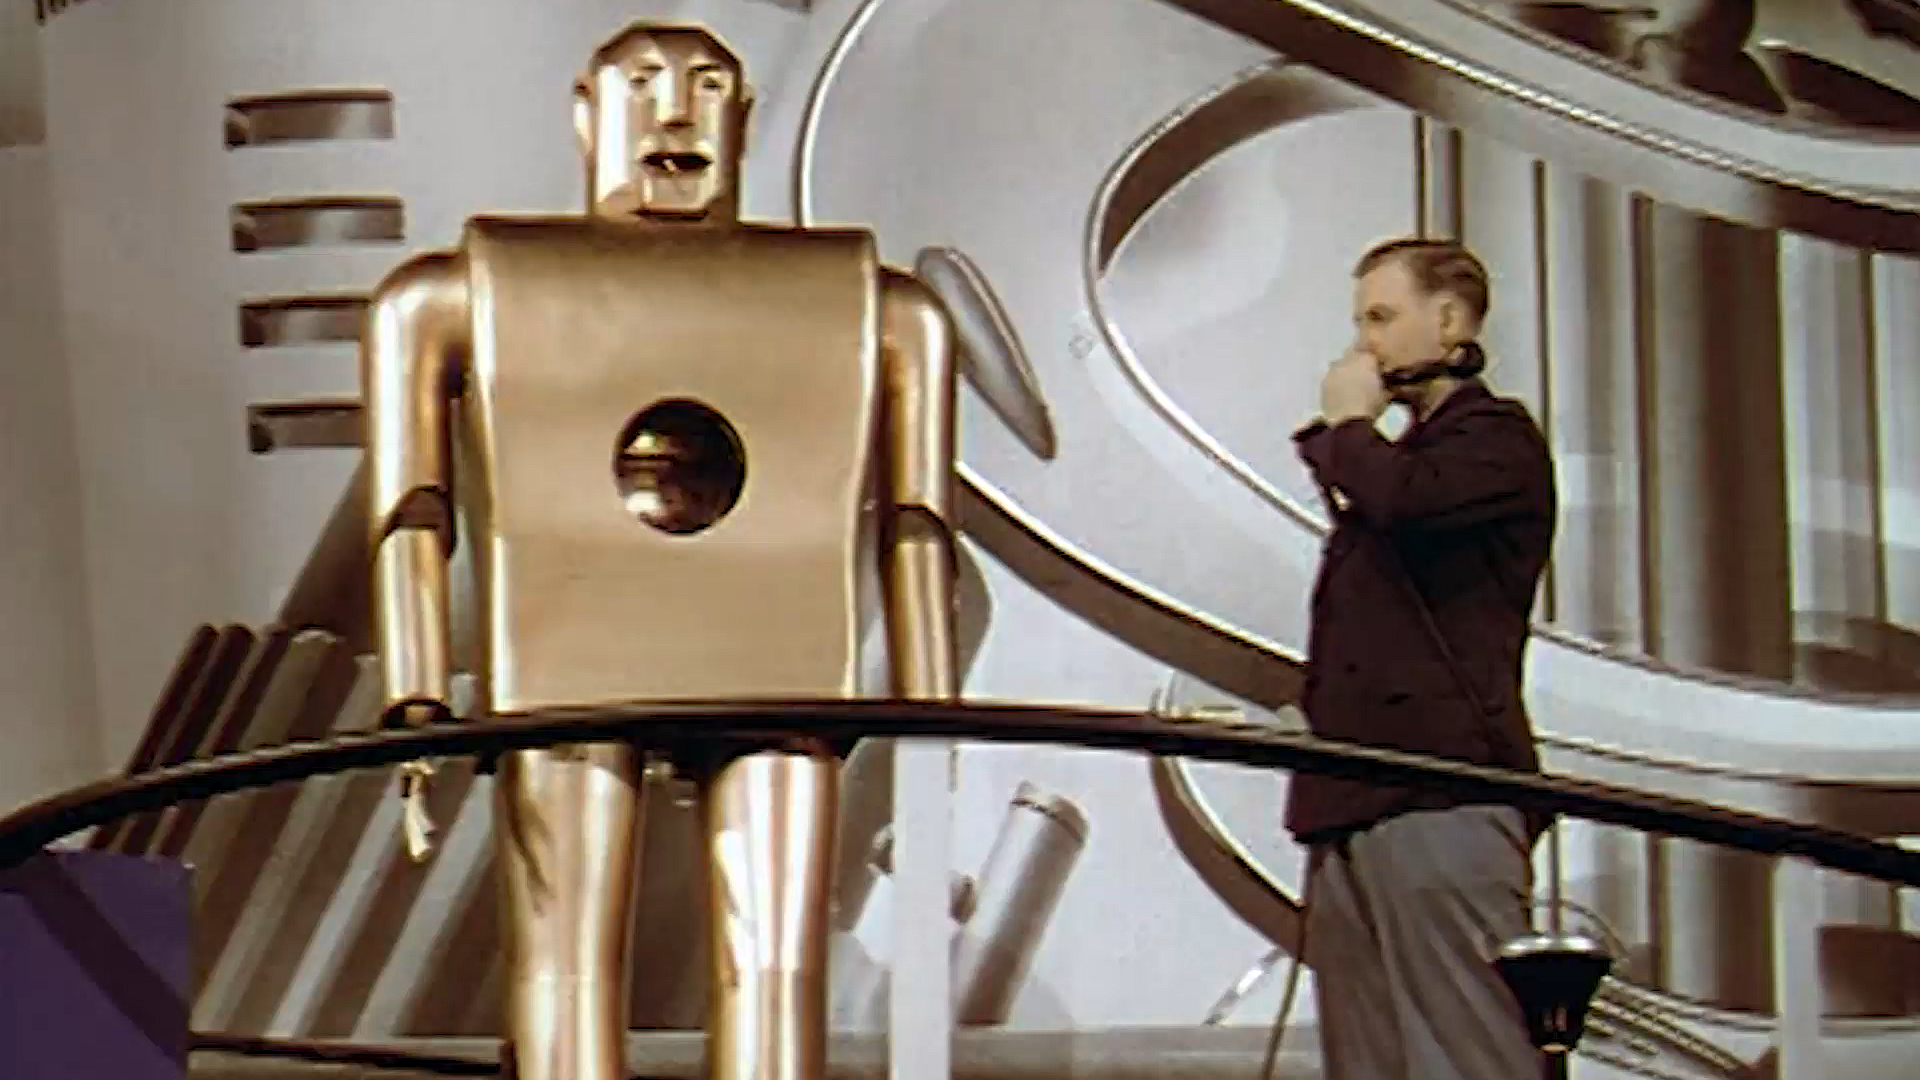 A Smoking Robot Ruled the 1939 World's Fair